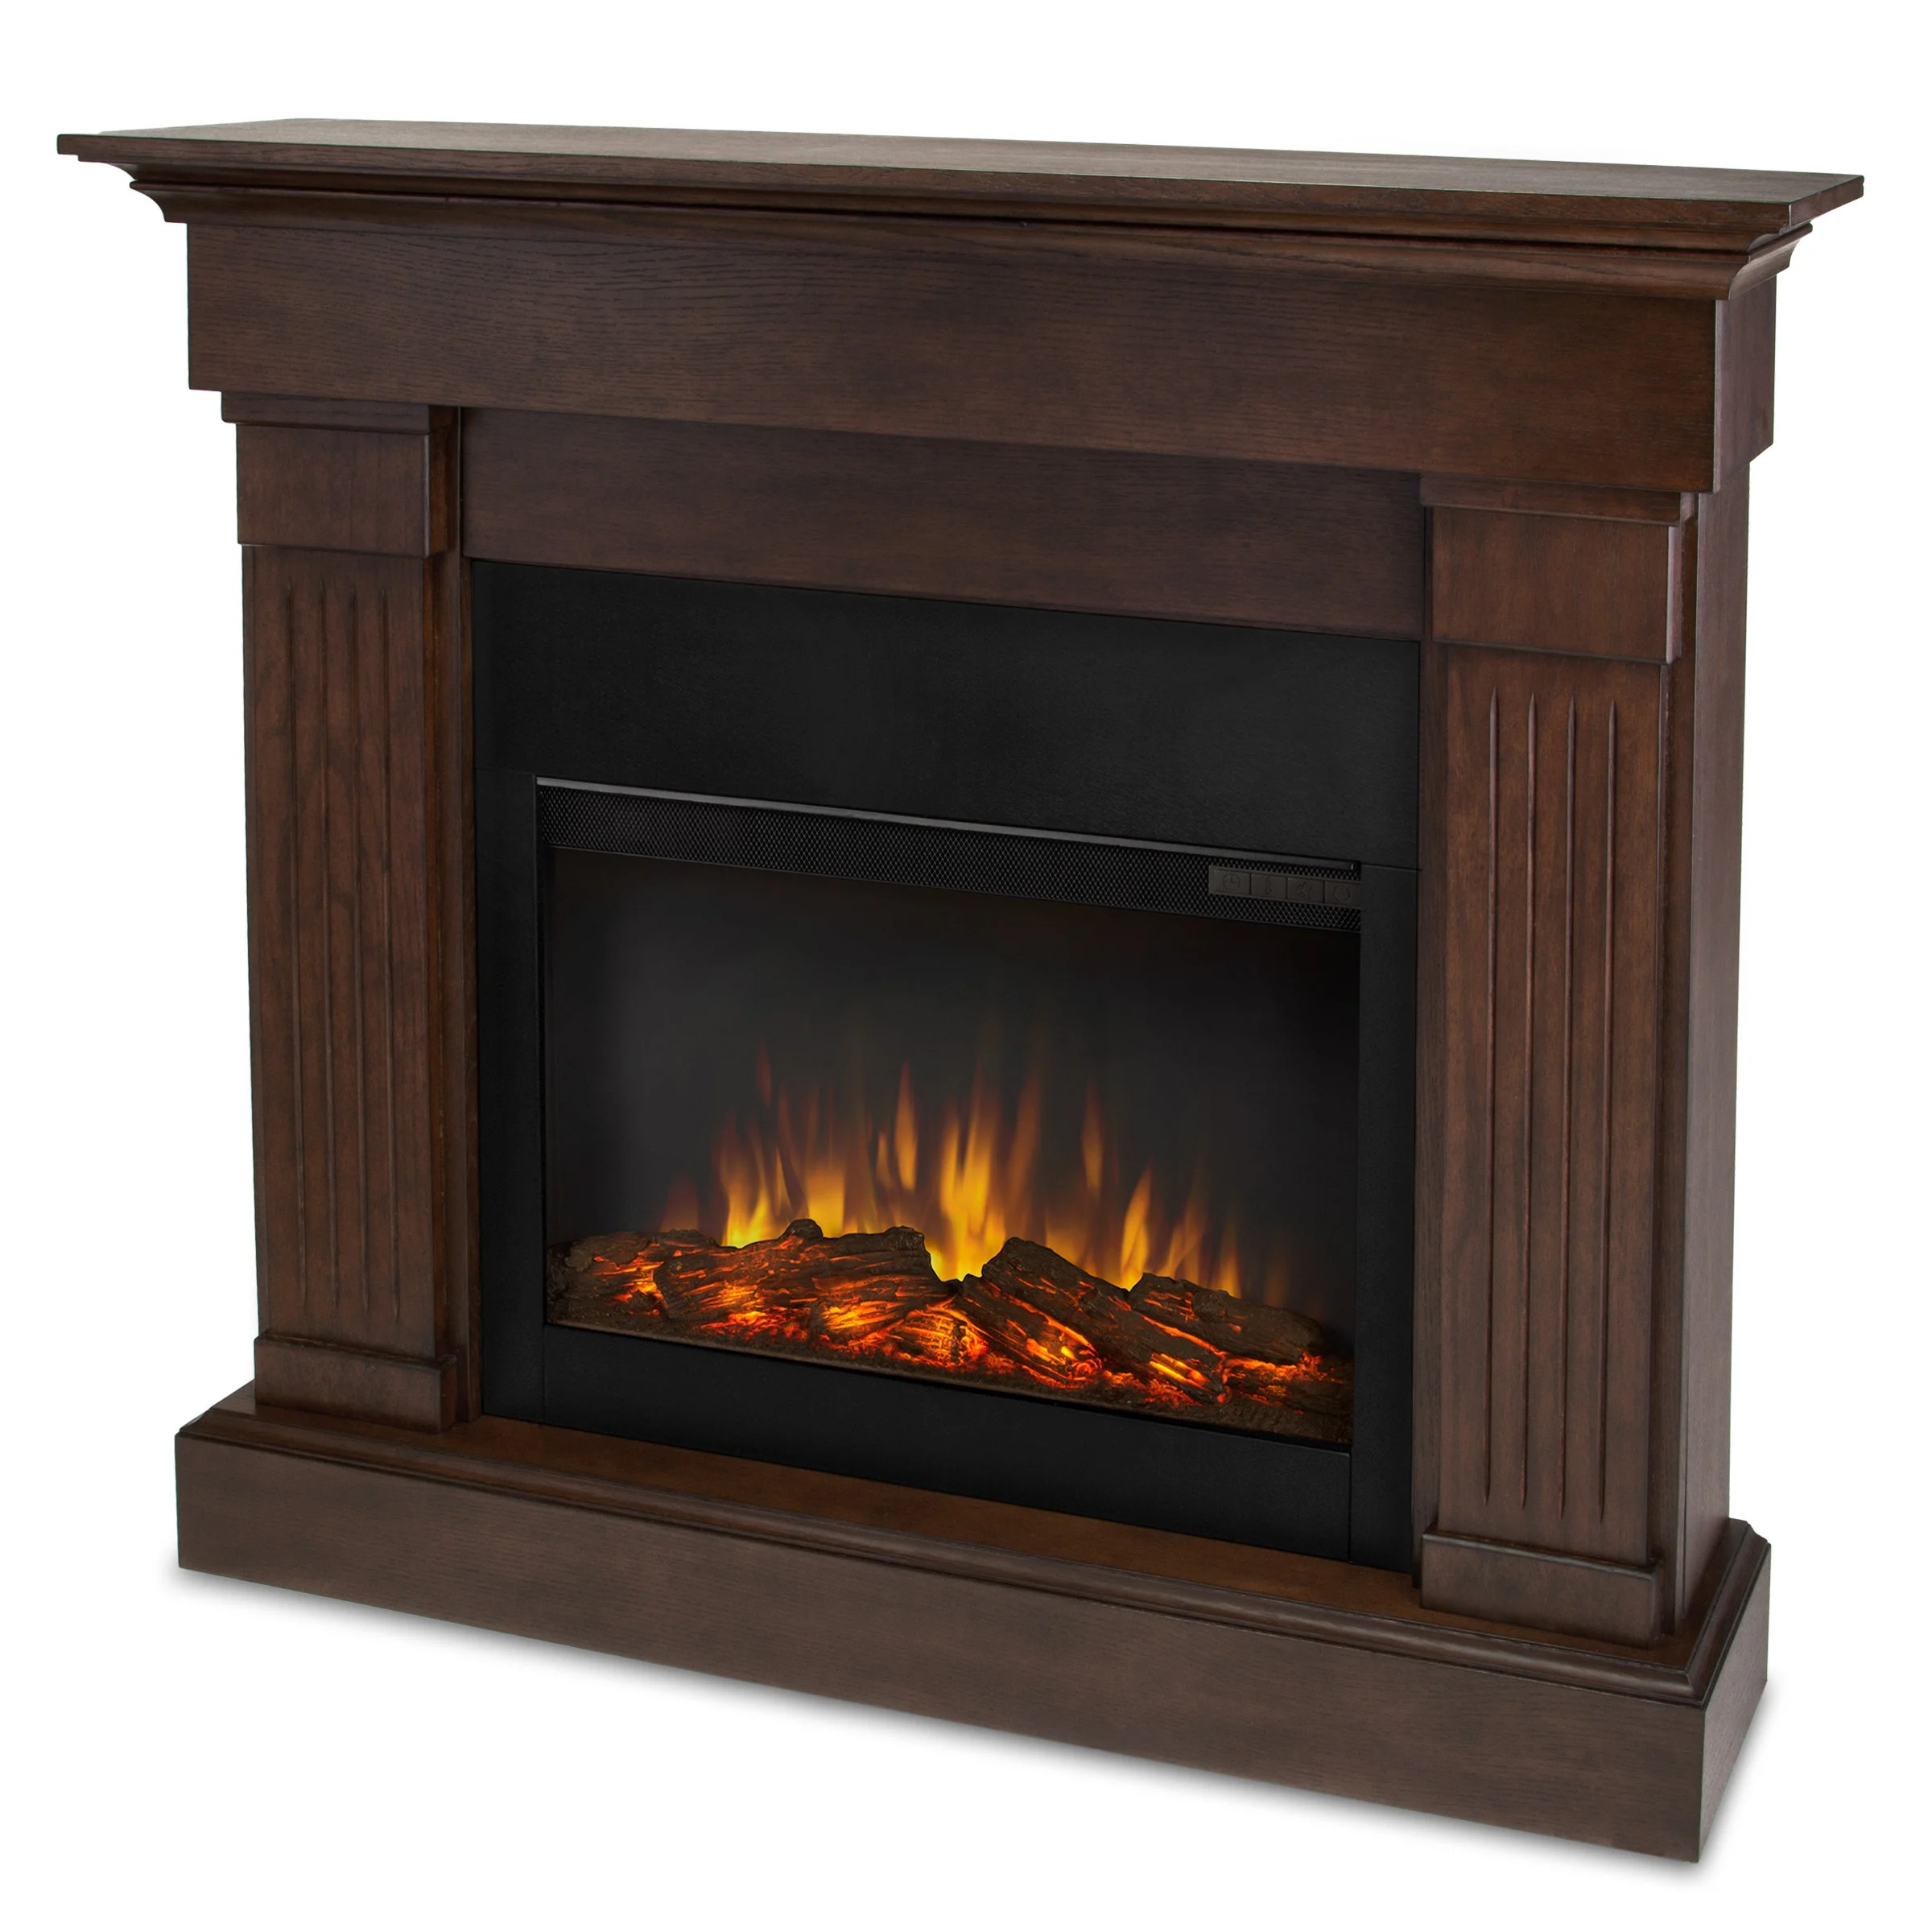 Electric Fireplace.com Real Flame 8020e